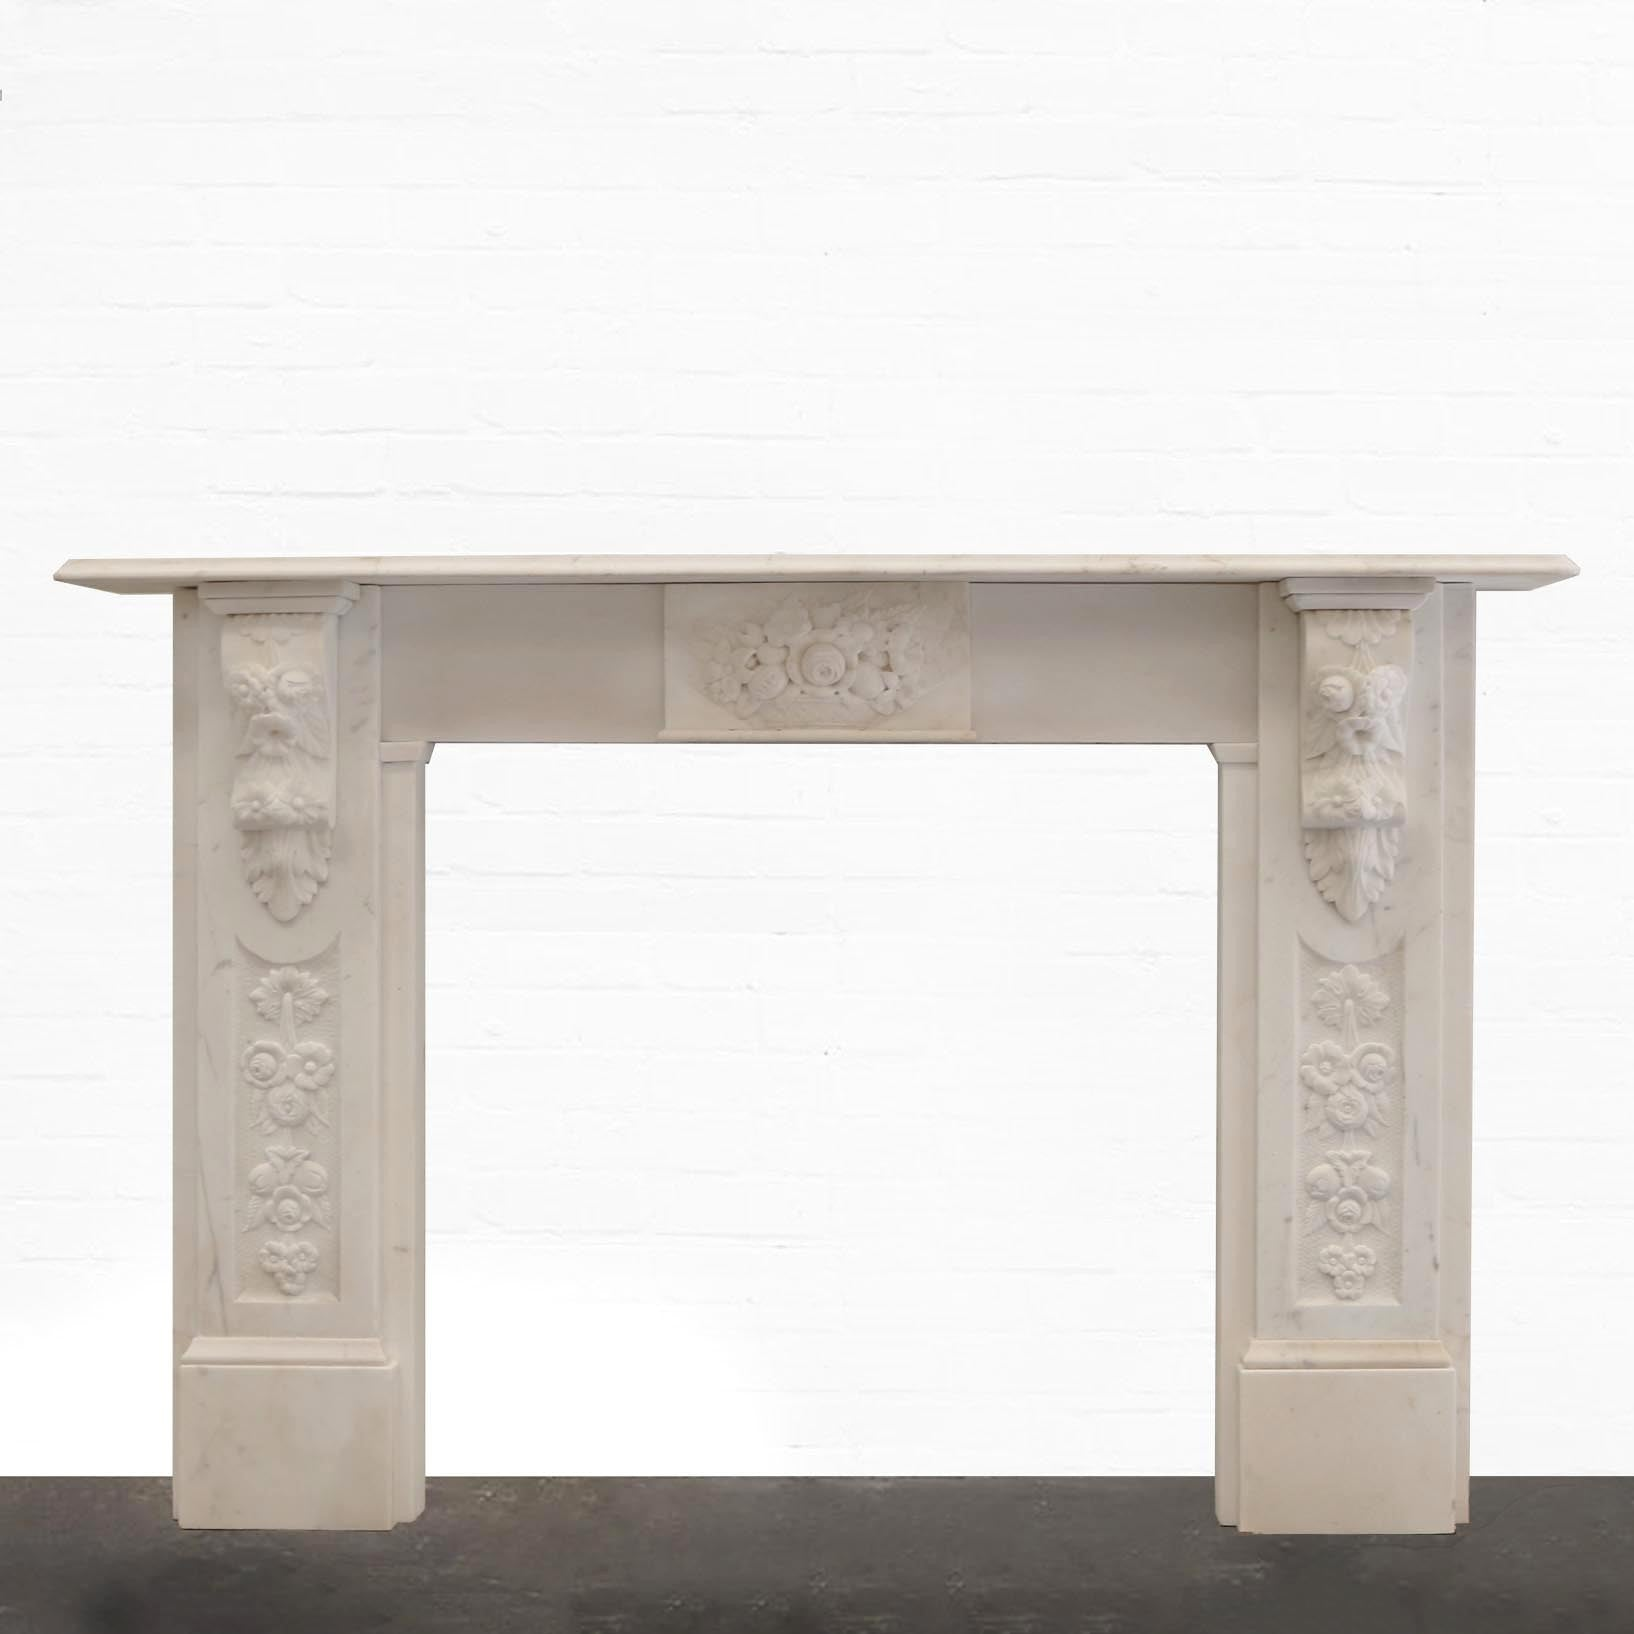 Antique Victorian Statutory Marble Fireplace Surround - The Architectural Forum